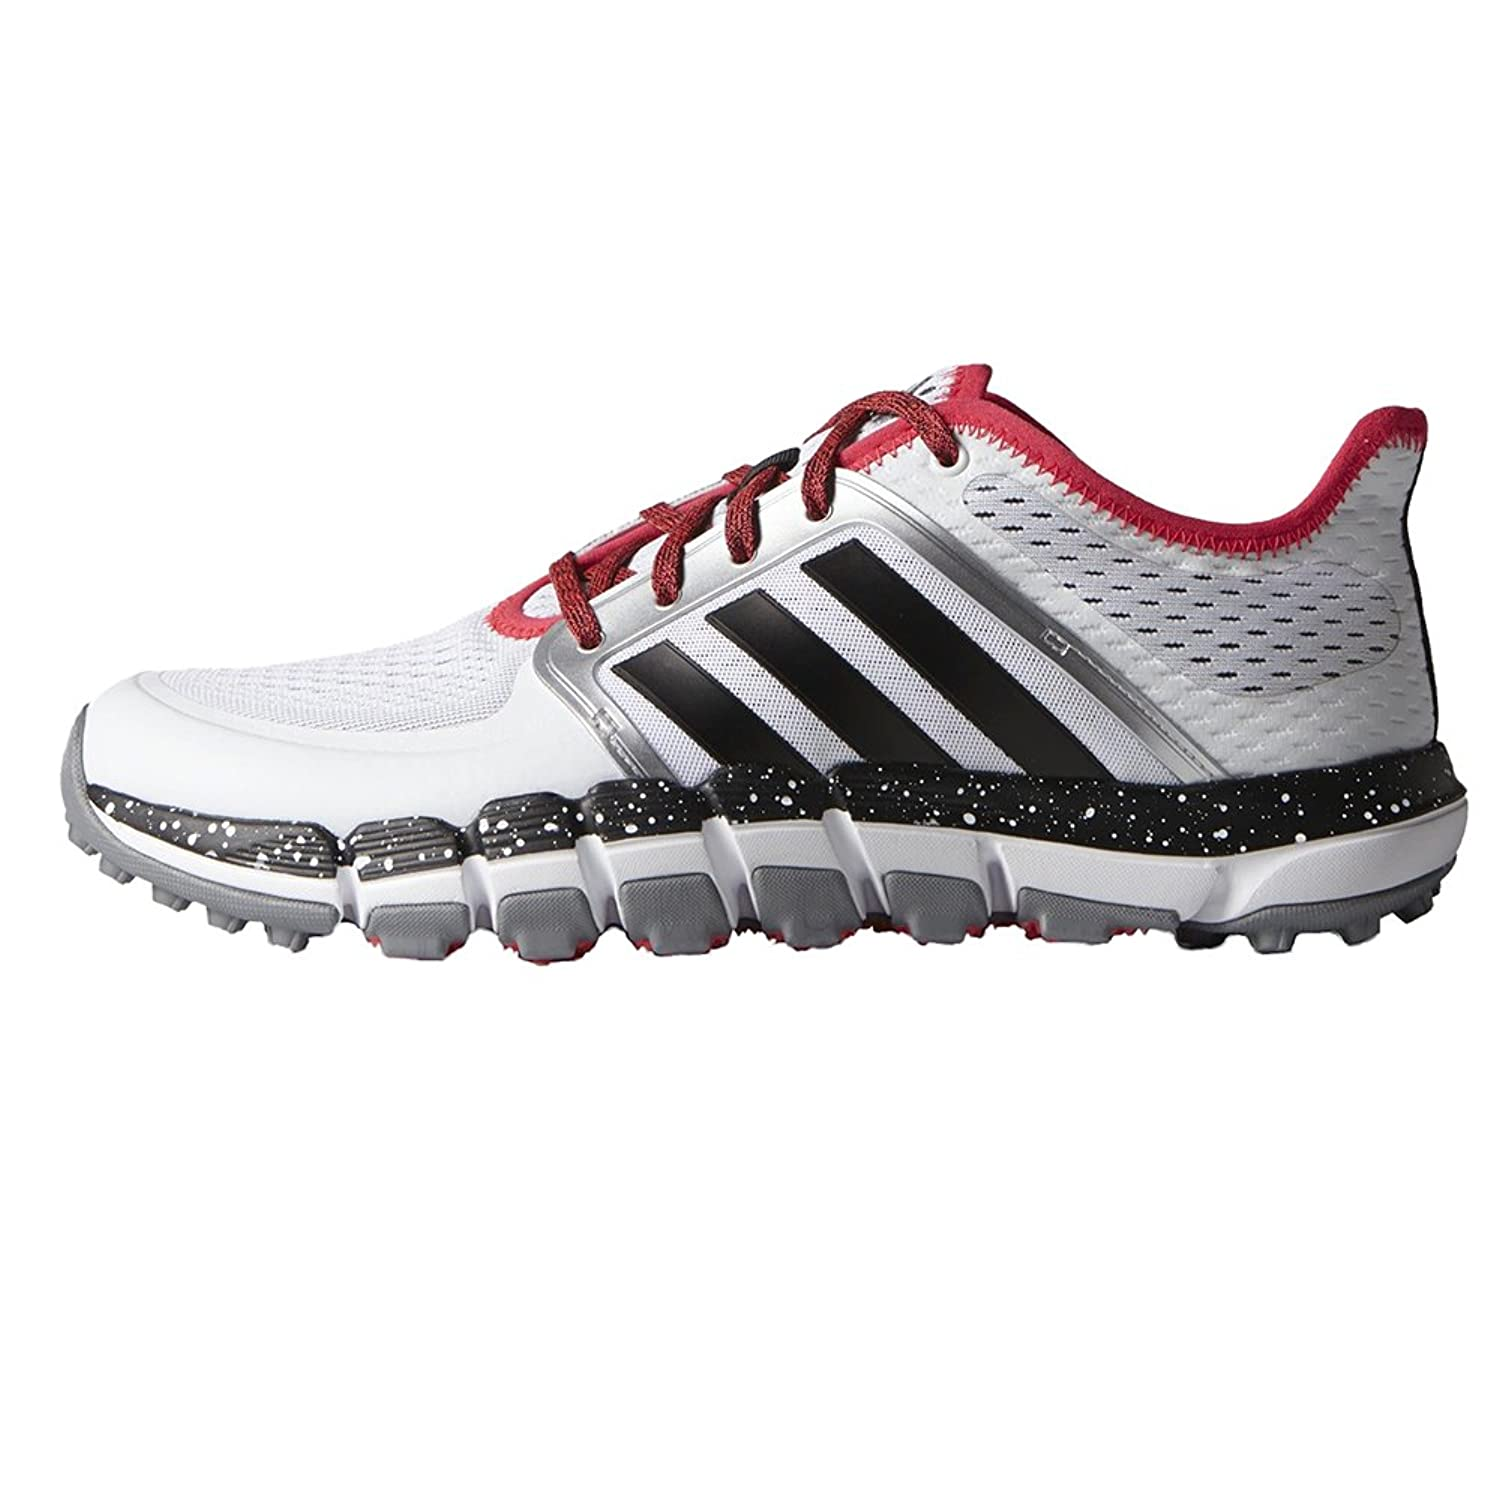 adidas golf men's adicross climacool motion golf shoes